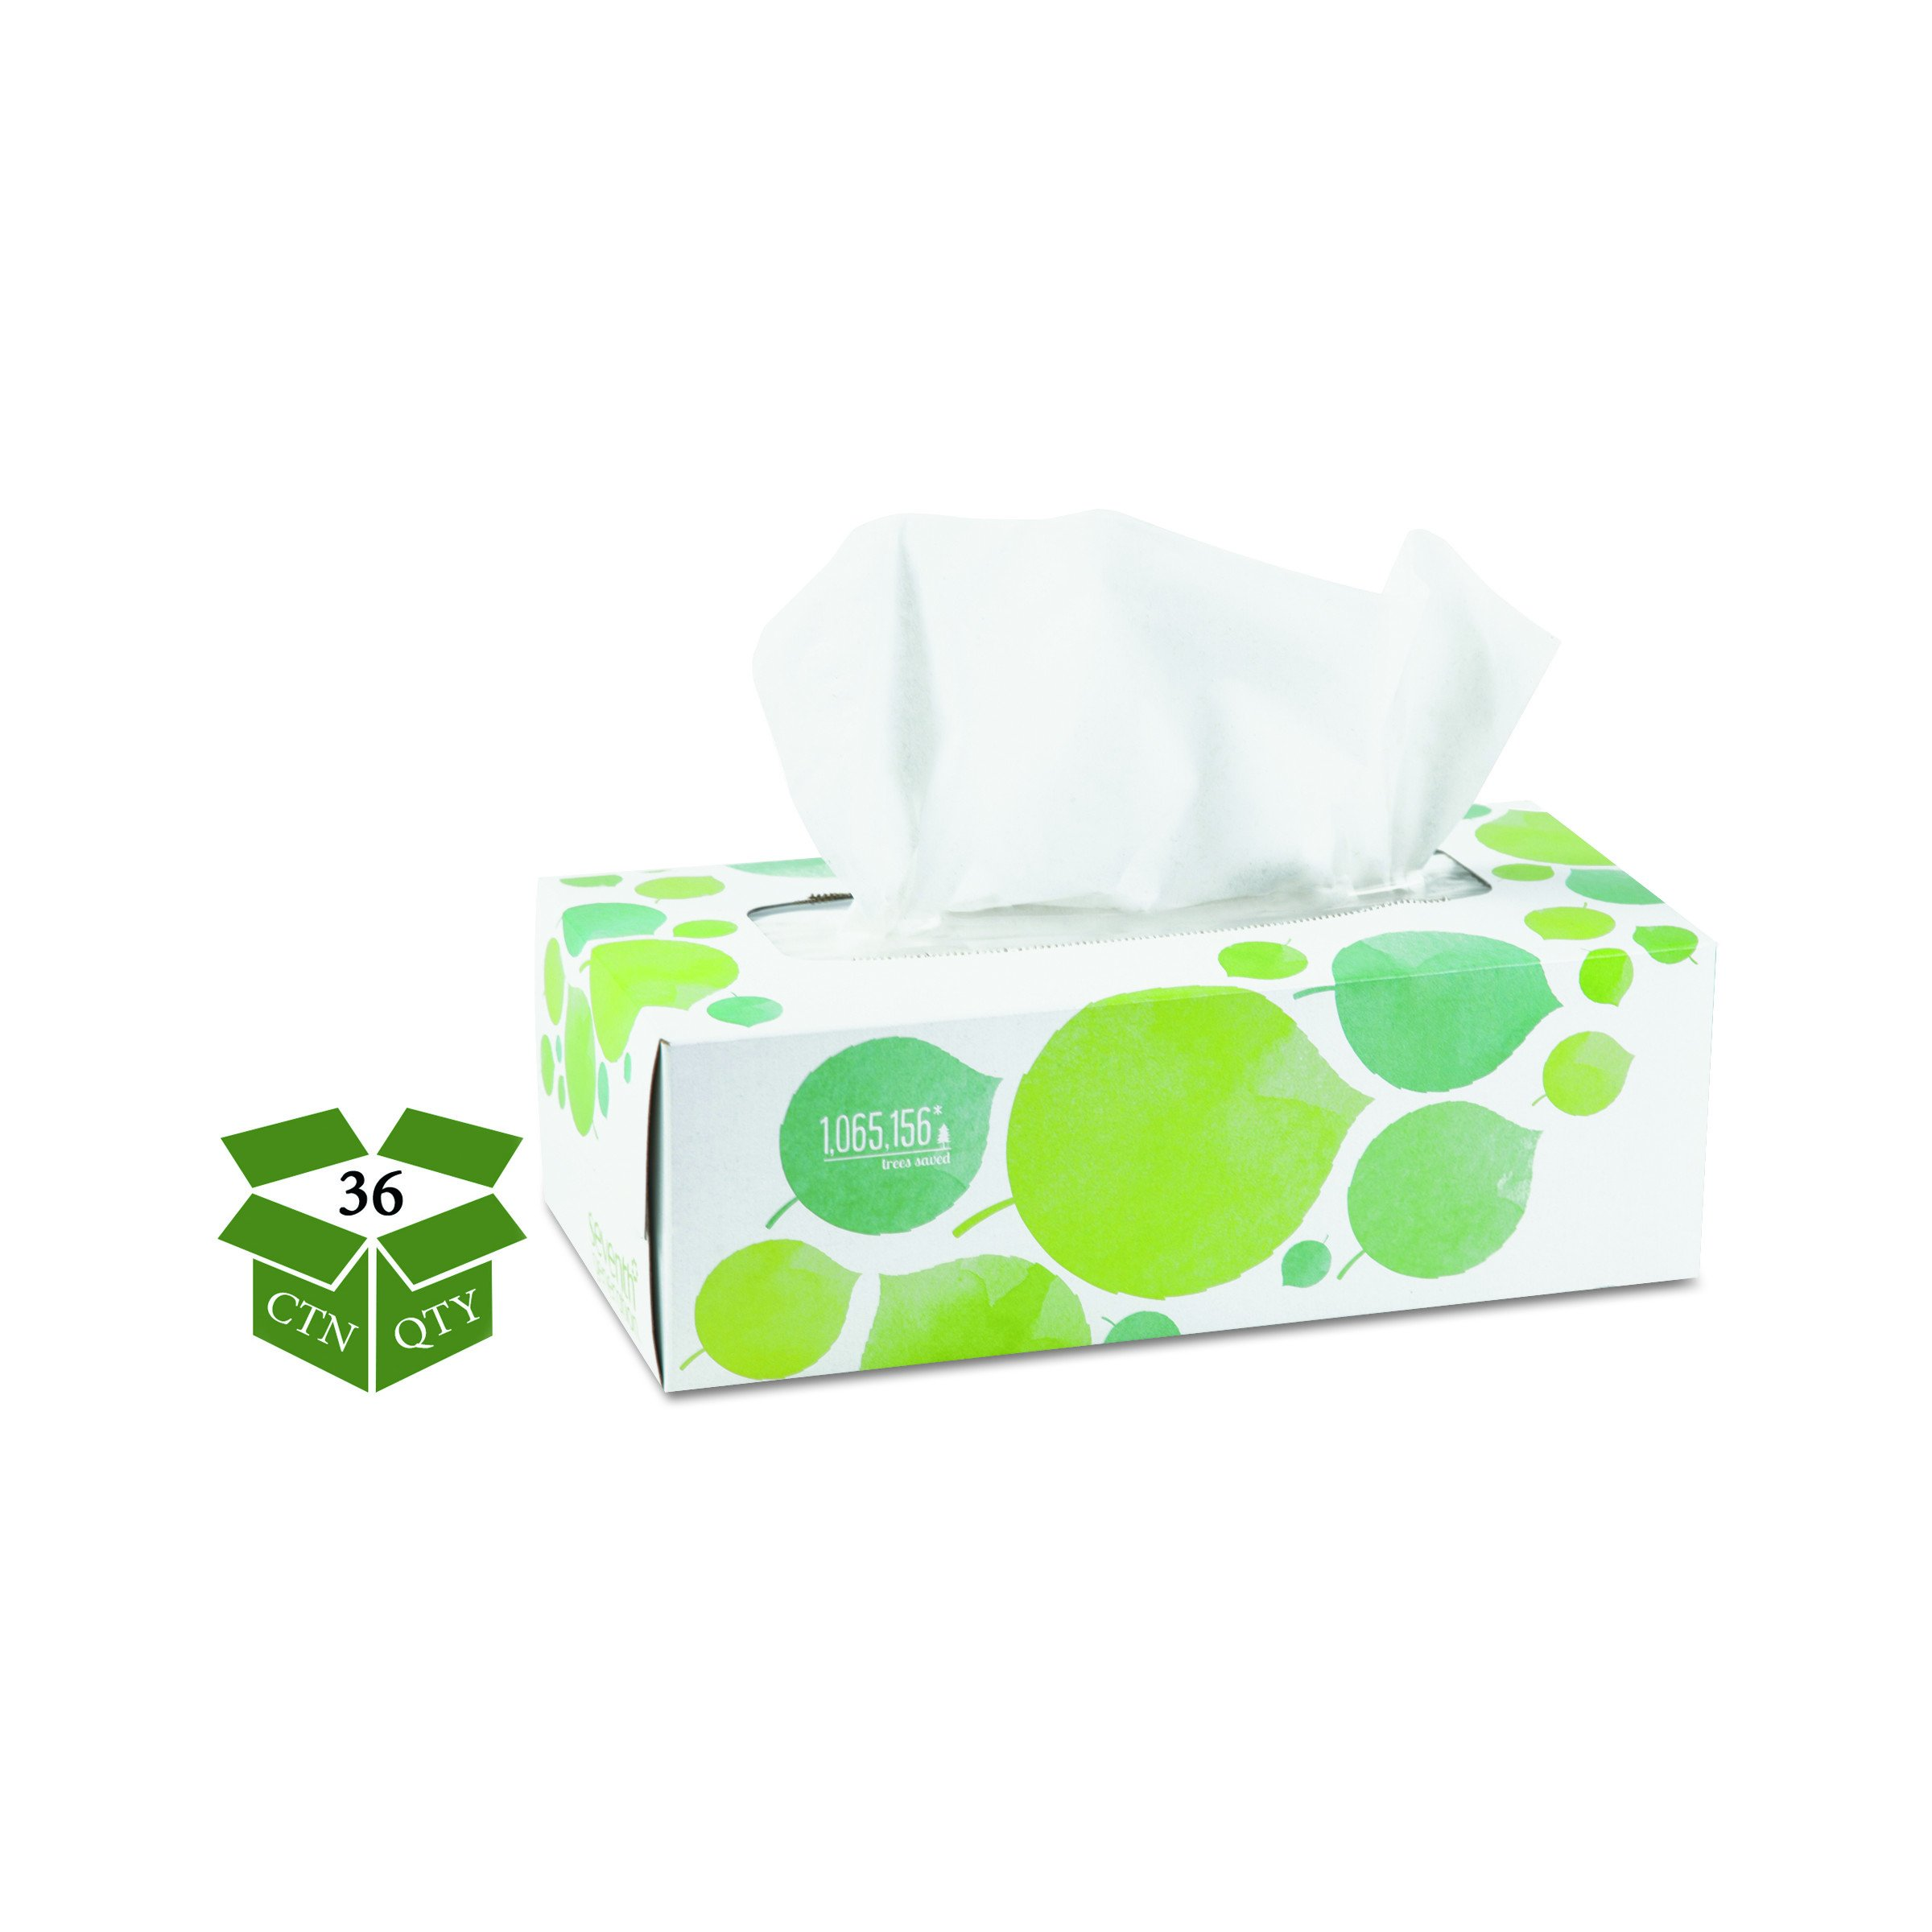 Seventh Generation 13712CT 100% Recycled Facial Tissue, 2-Ply, 175 per Box (Case of 36) by Seventh Generation (Image #1)